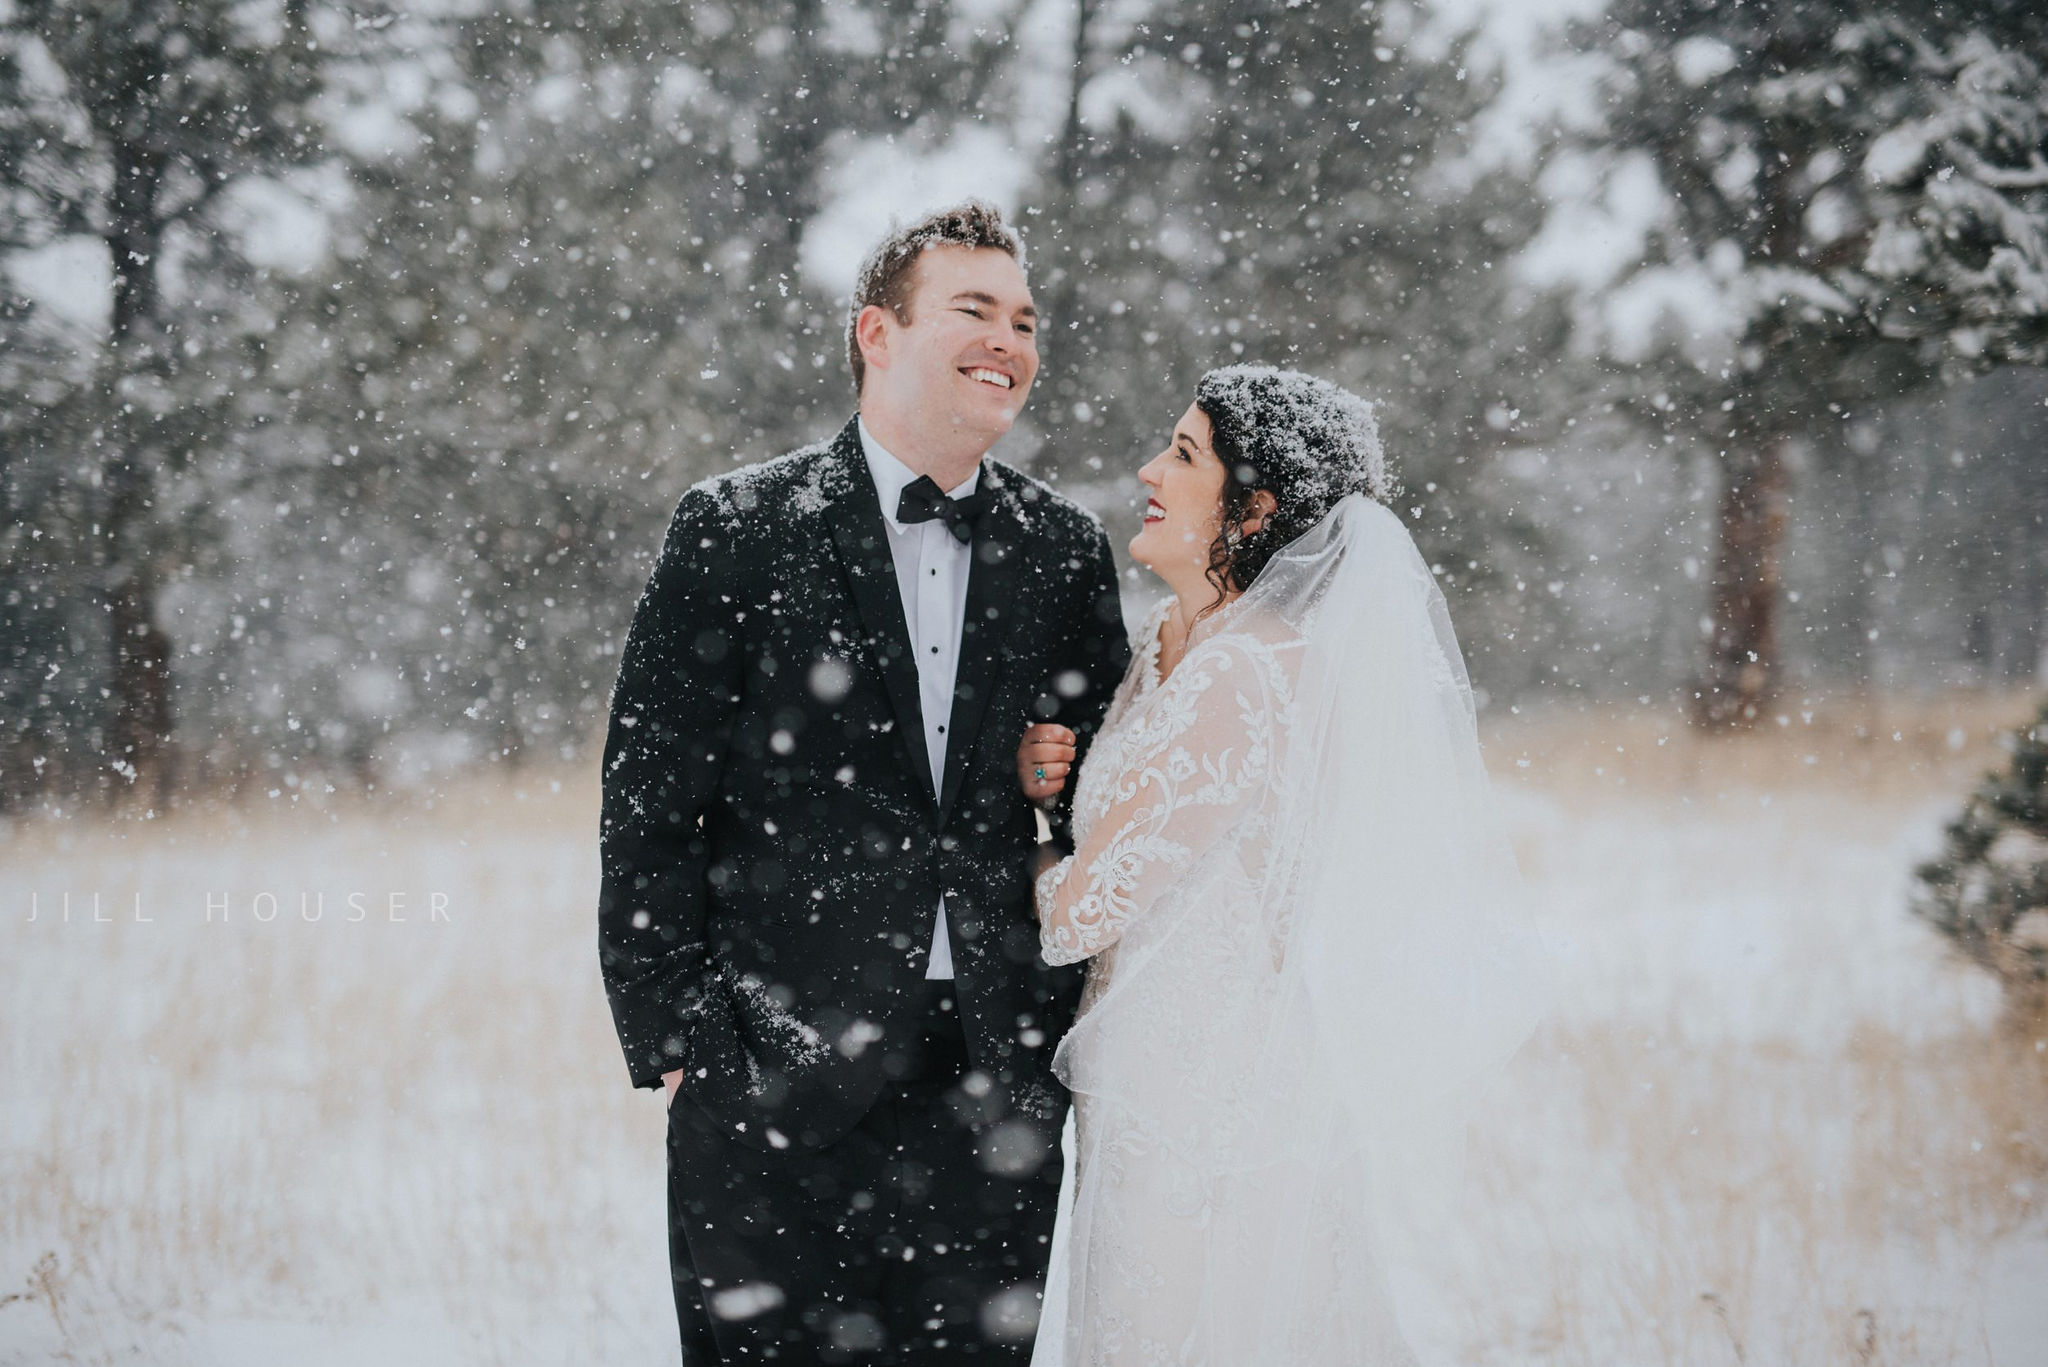 Wedfuly Wedding in Boulder; Photo:  Jill Houser Photography